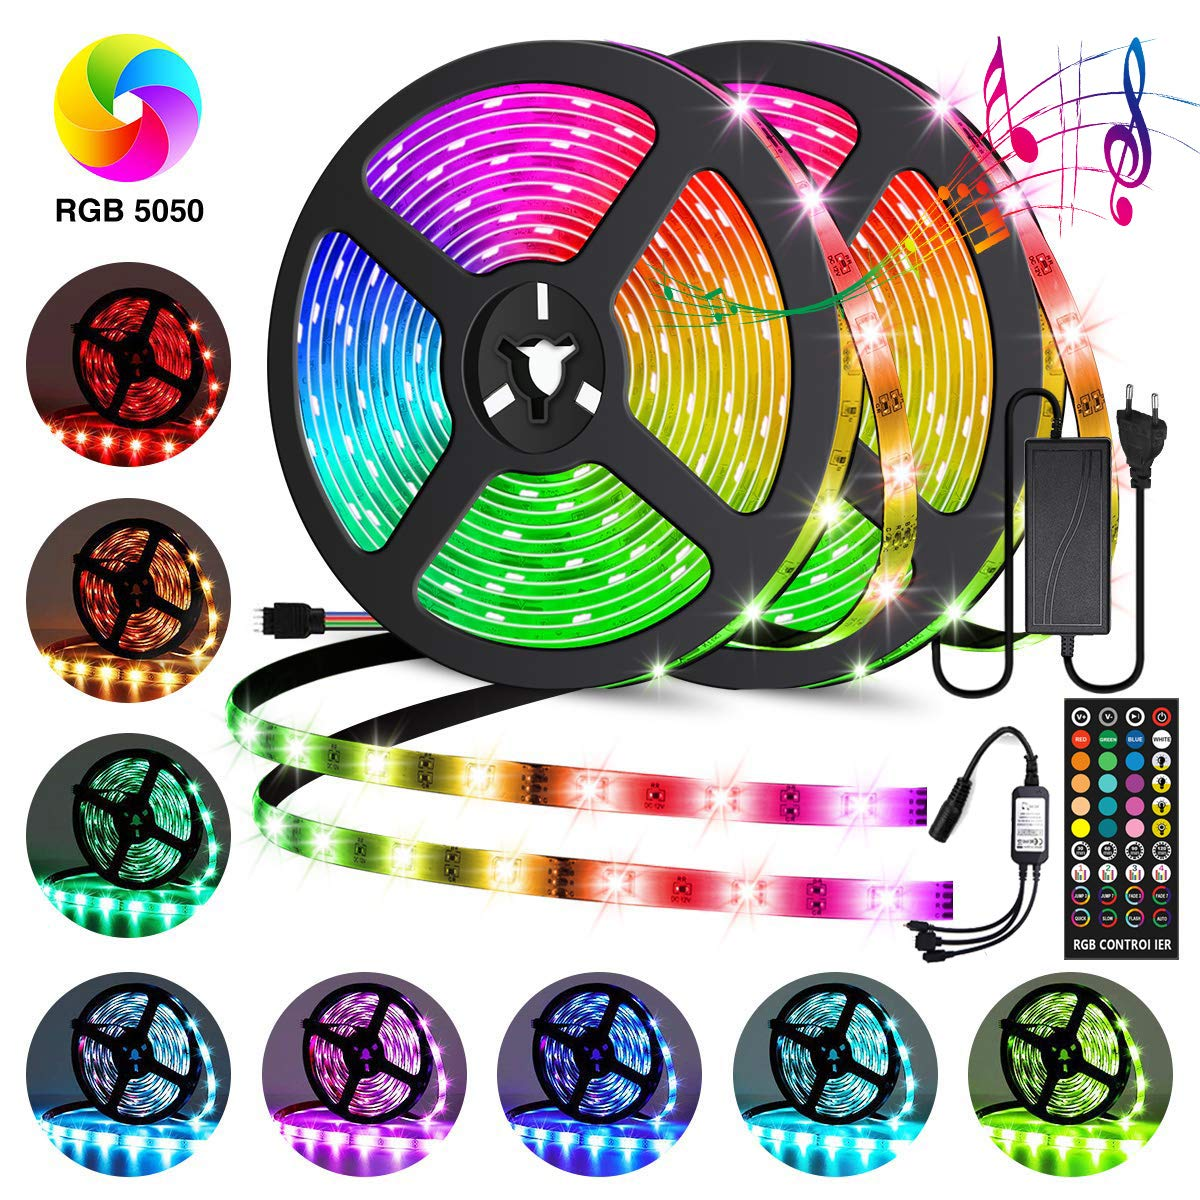 Led Strip Lights, Wrrlight 32.8ft 300LEDs SMD5050 Waterproof Music Lights RGB Rope Lights Flexible LED Strips Kit for Home Kitchen Bar,Color Changing Led Strip with 3M Adhesive,12V/5A Power Supply